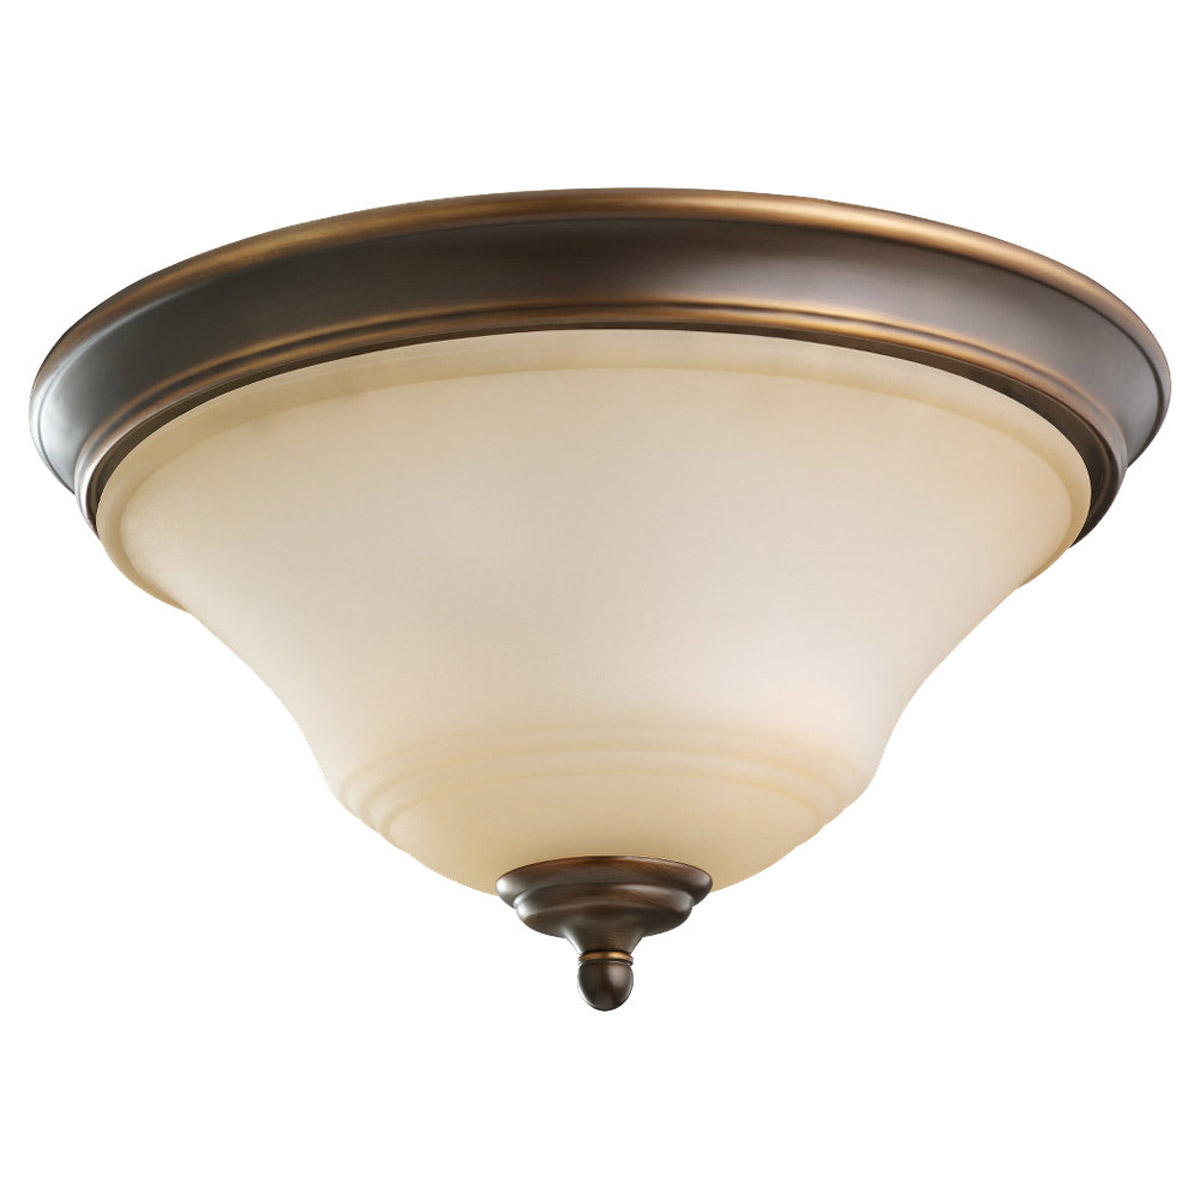 Sea Gull 75381-829 Parkview 2 Light 15 inch Russet Bronze Flush Mount Ceiling Light in Ginger Glass photo